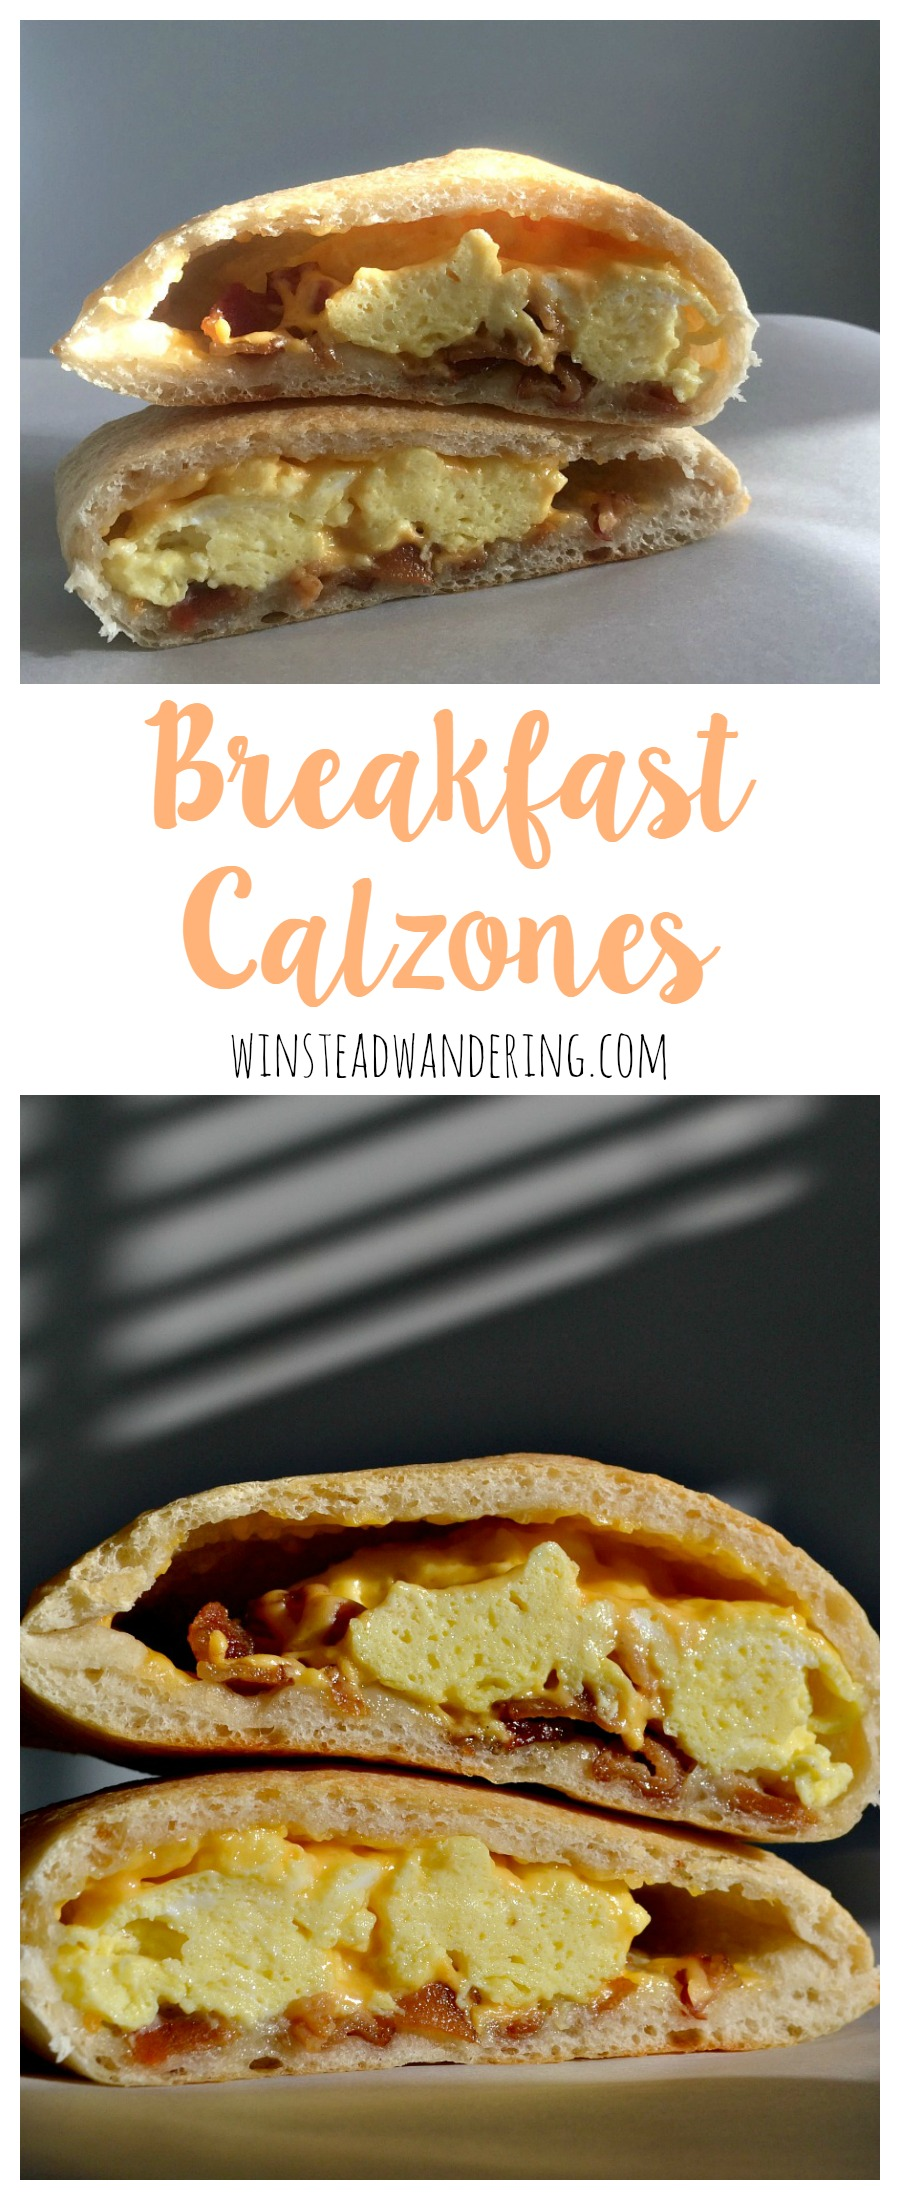 With store bought dough and a few classic breakfast staples, you can whip up a batch of easy, satisfying, portable breakfast calzones.